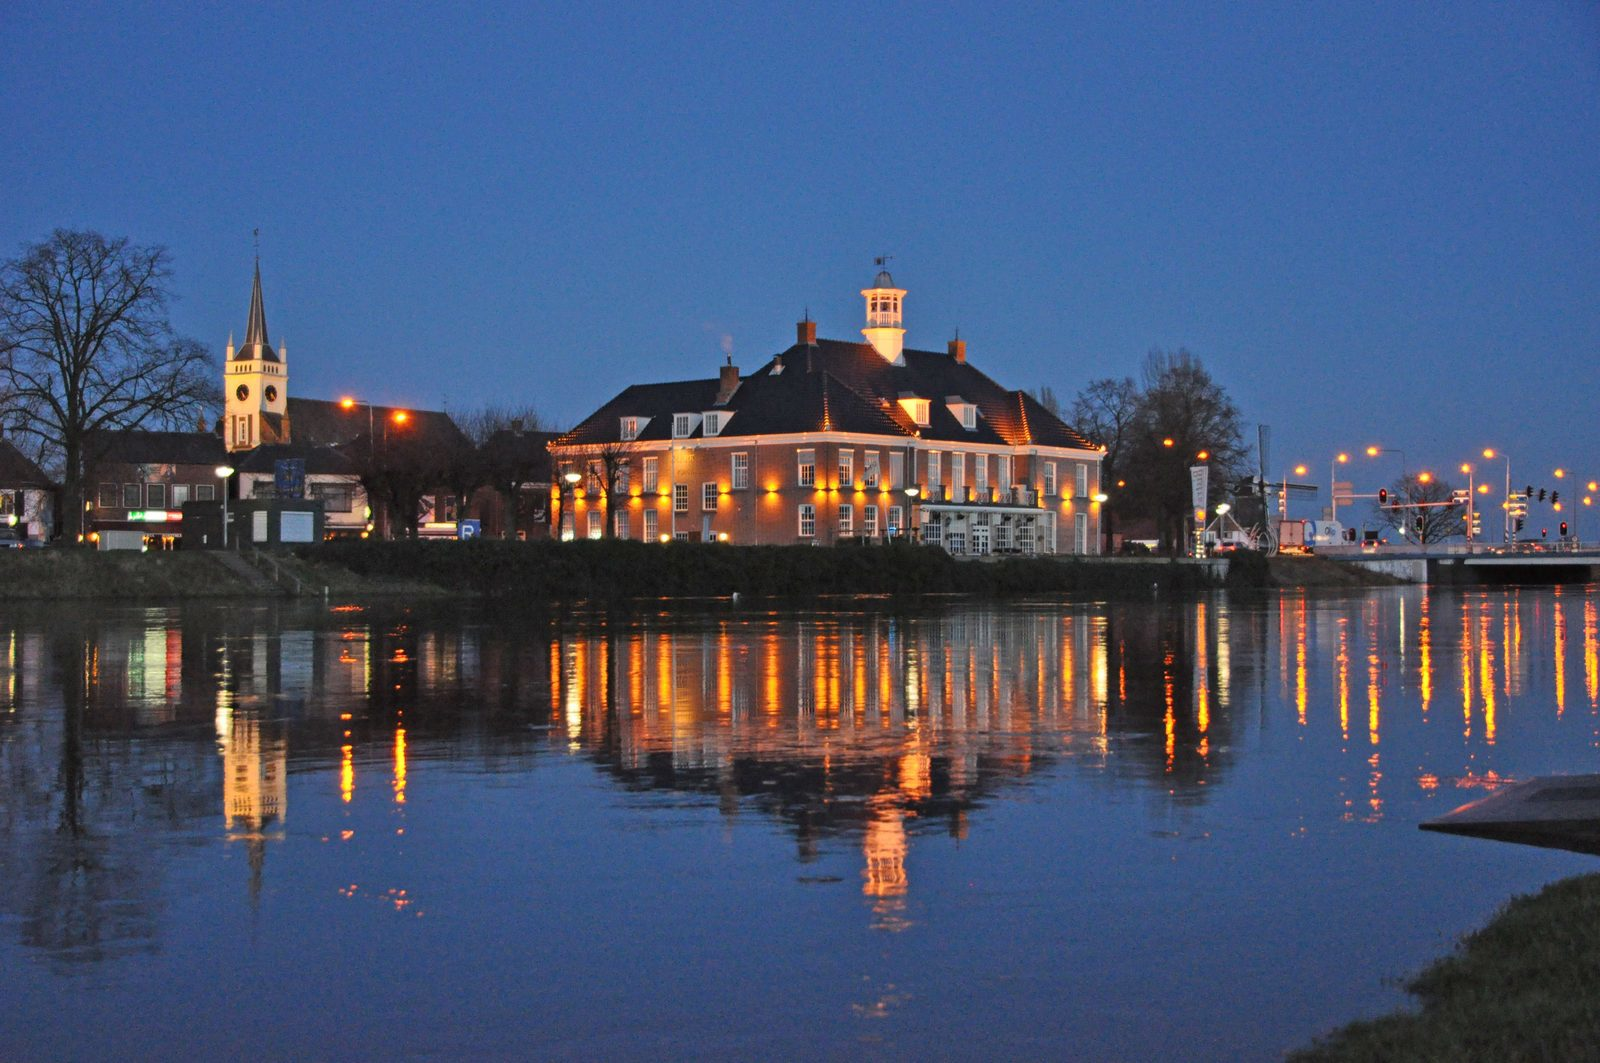 Discover the picturesque city of Ommen